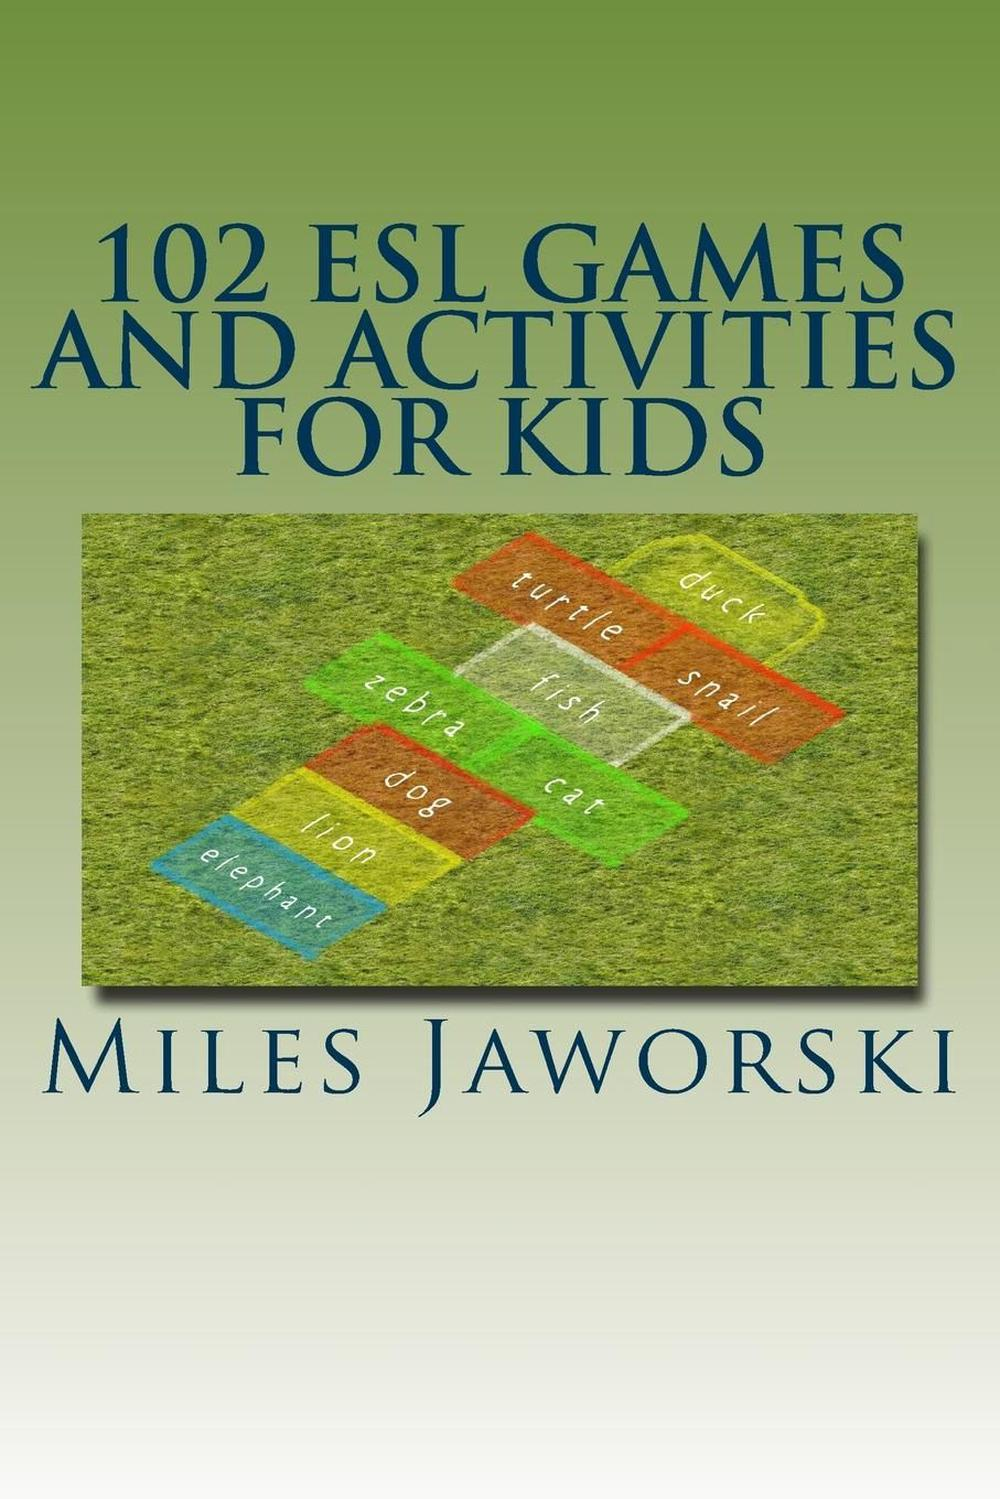 Esl Games Details About 102 Esl Games And Activities For Kids Esl Activities For Children By Miles Jawo